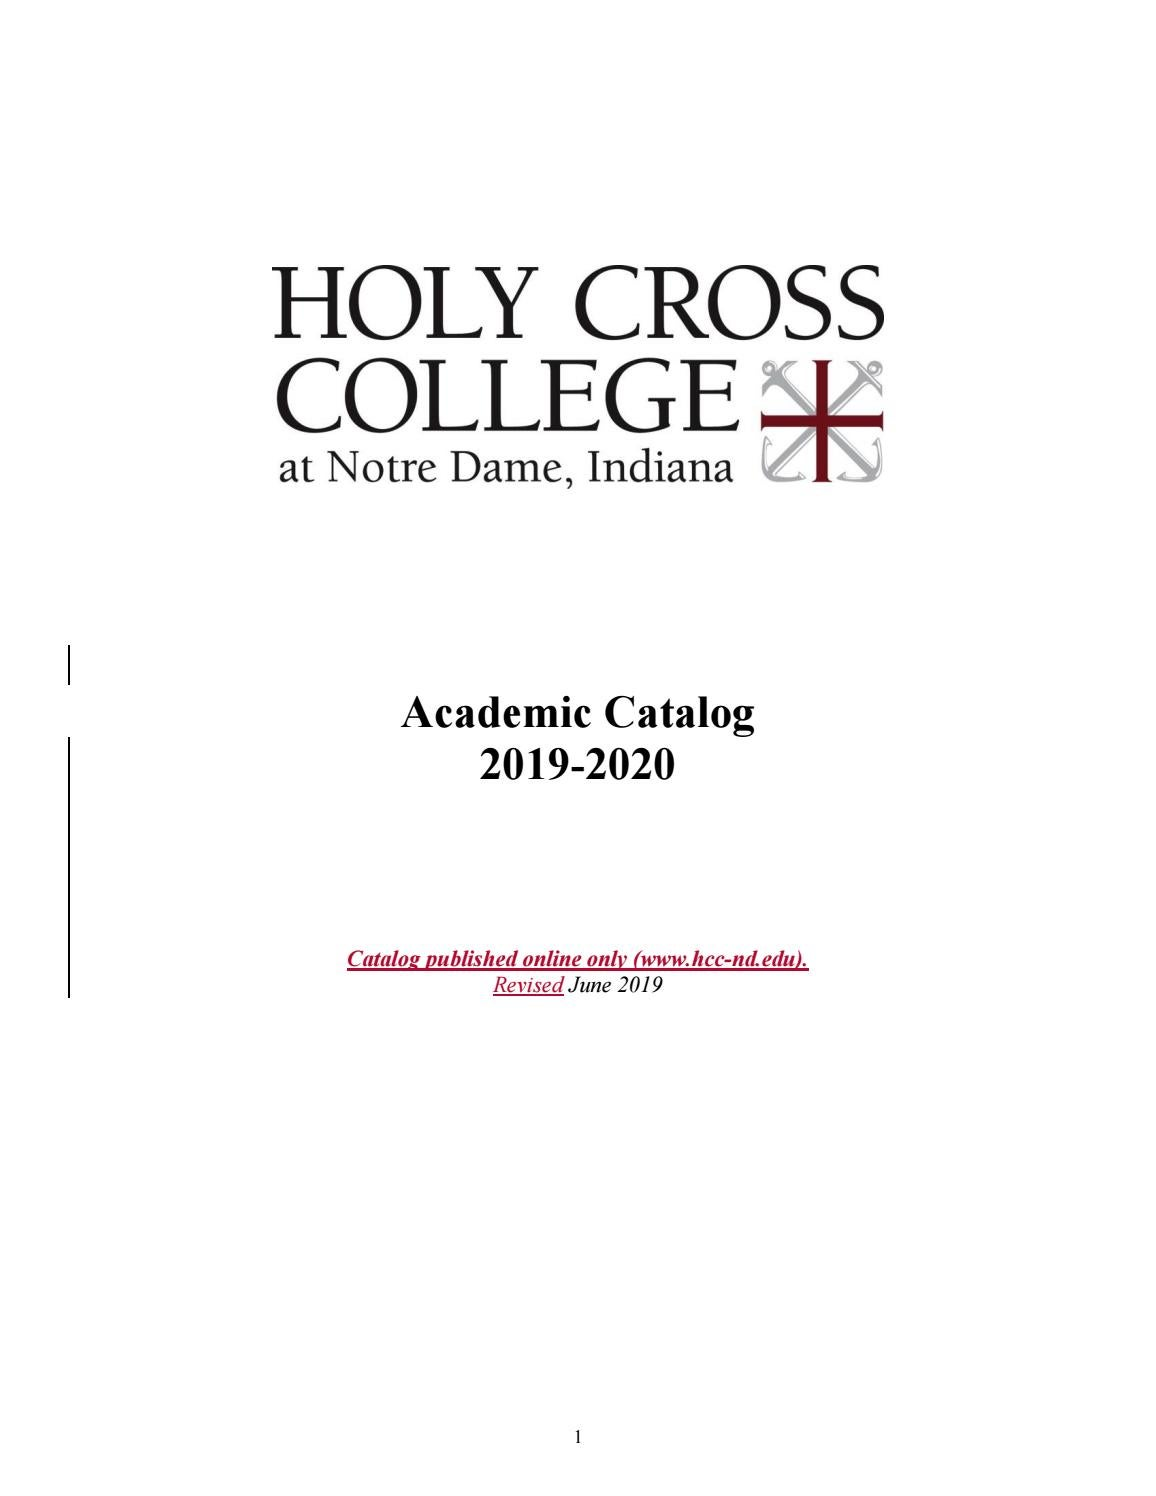 2019-2020 Academic Catalog by Holy Cross College - issuu